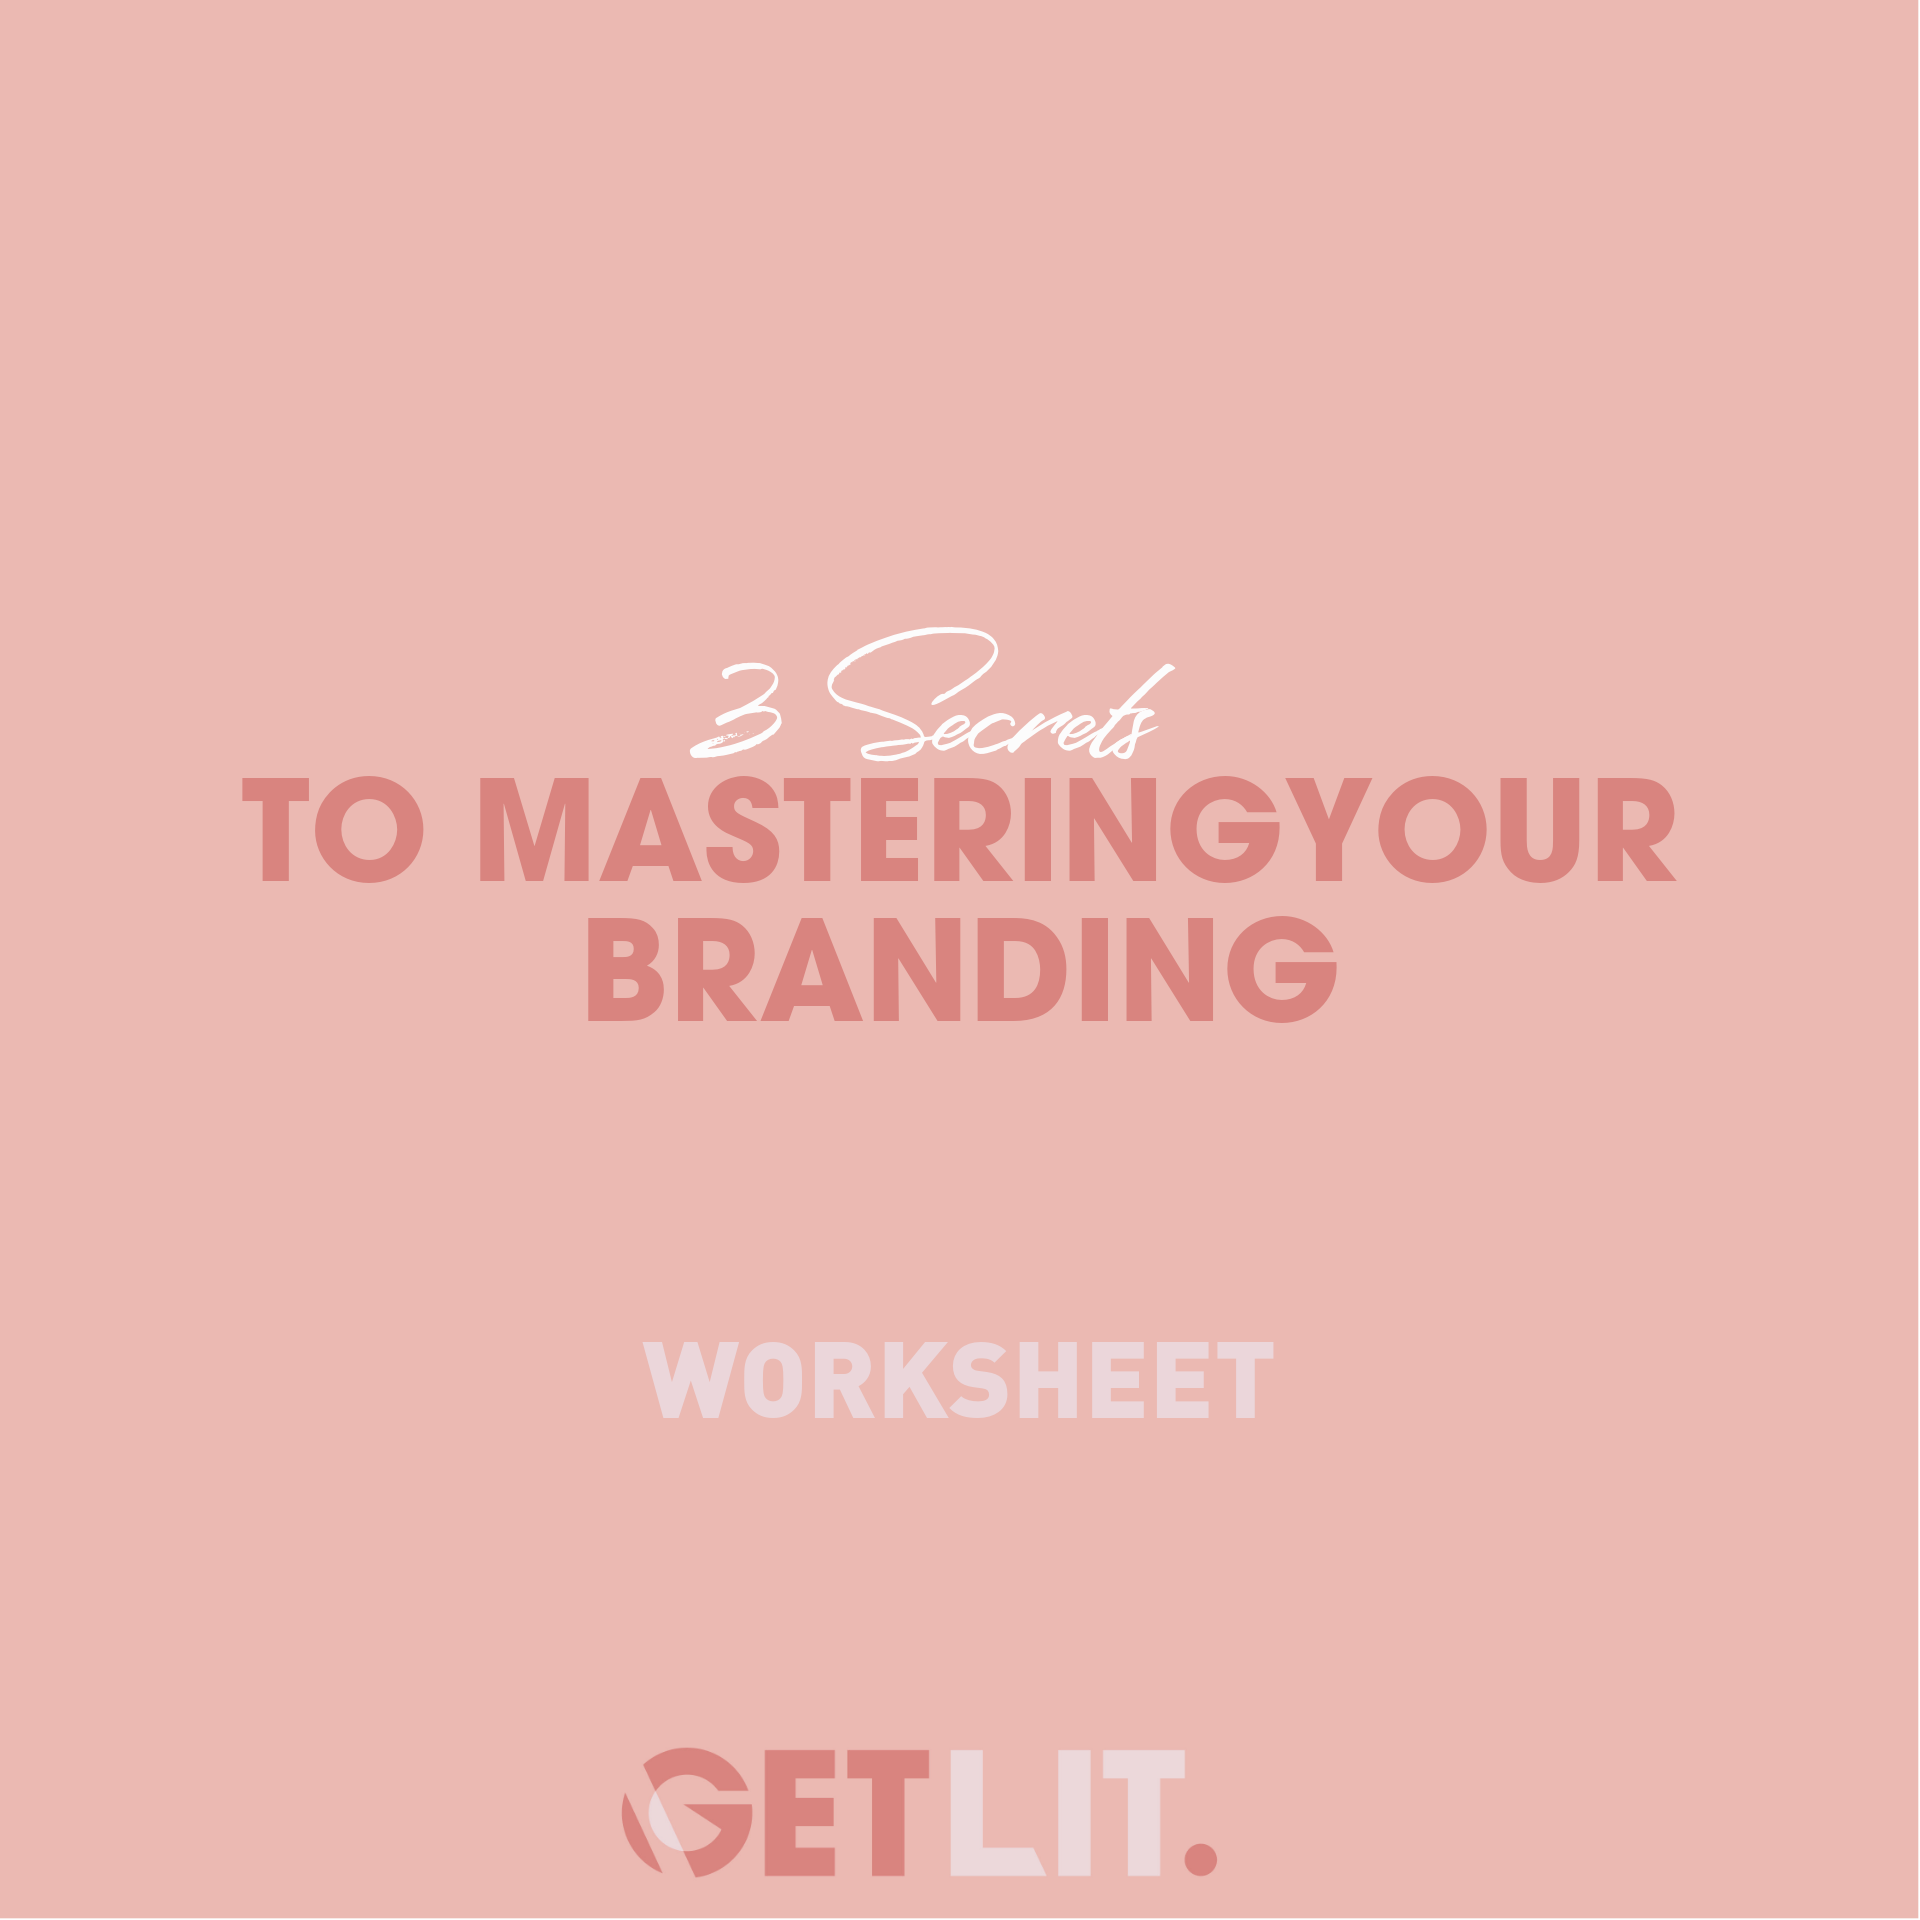 3 SECRETS TO MASTERING YOUR BRANDING - Your branding is so essential to the way people view you and your professionalism in the industry. It is also one of the most overlooked elements amongst entrepreneurs. Find our 3 key secrets to mastering your branding and ways to map out yours inside this worksheet